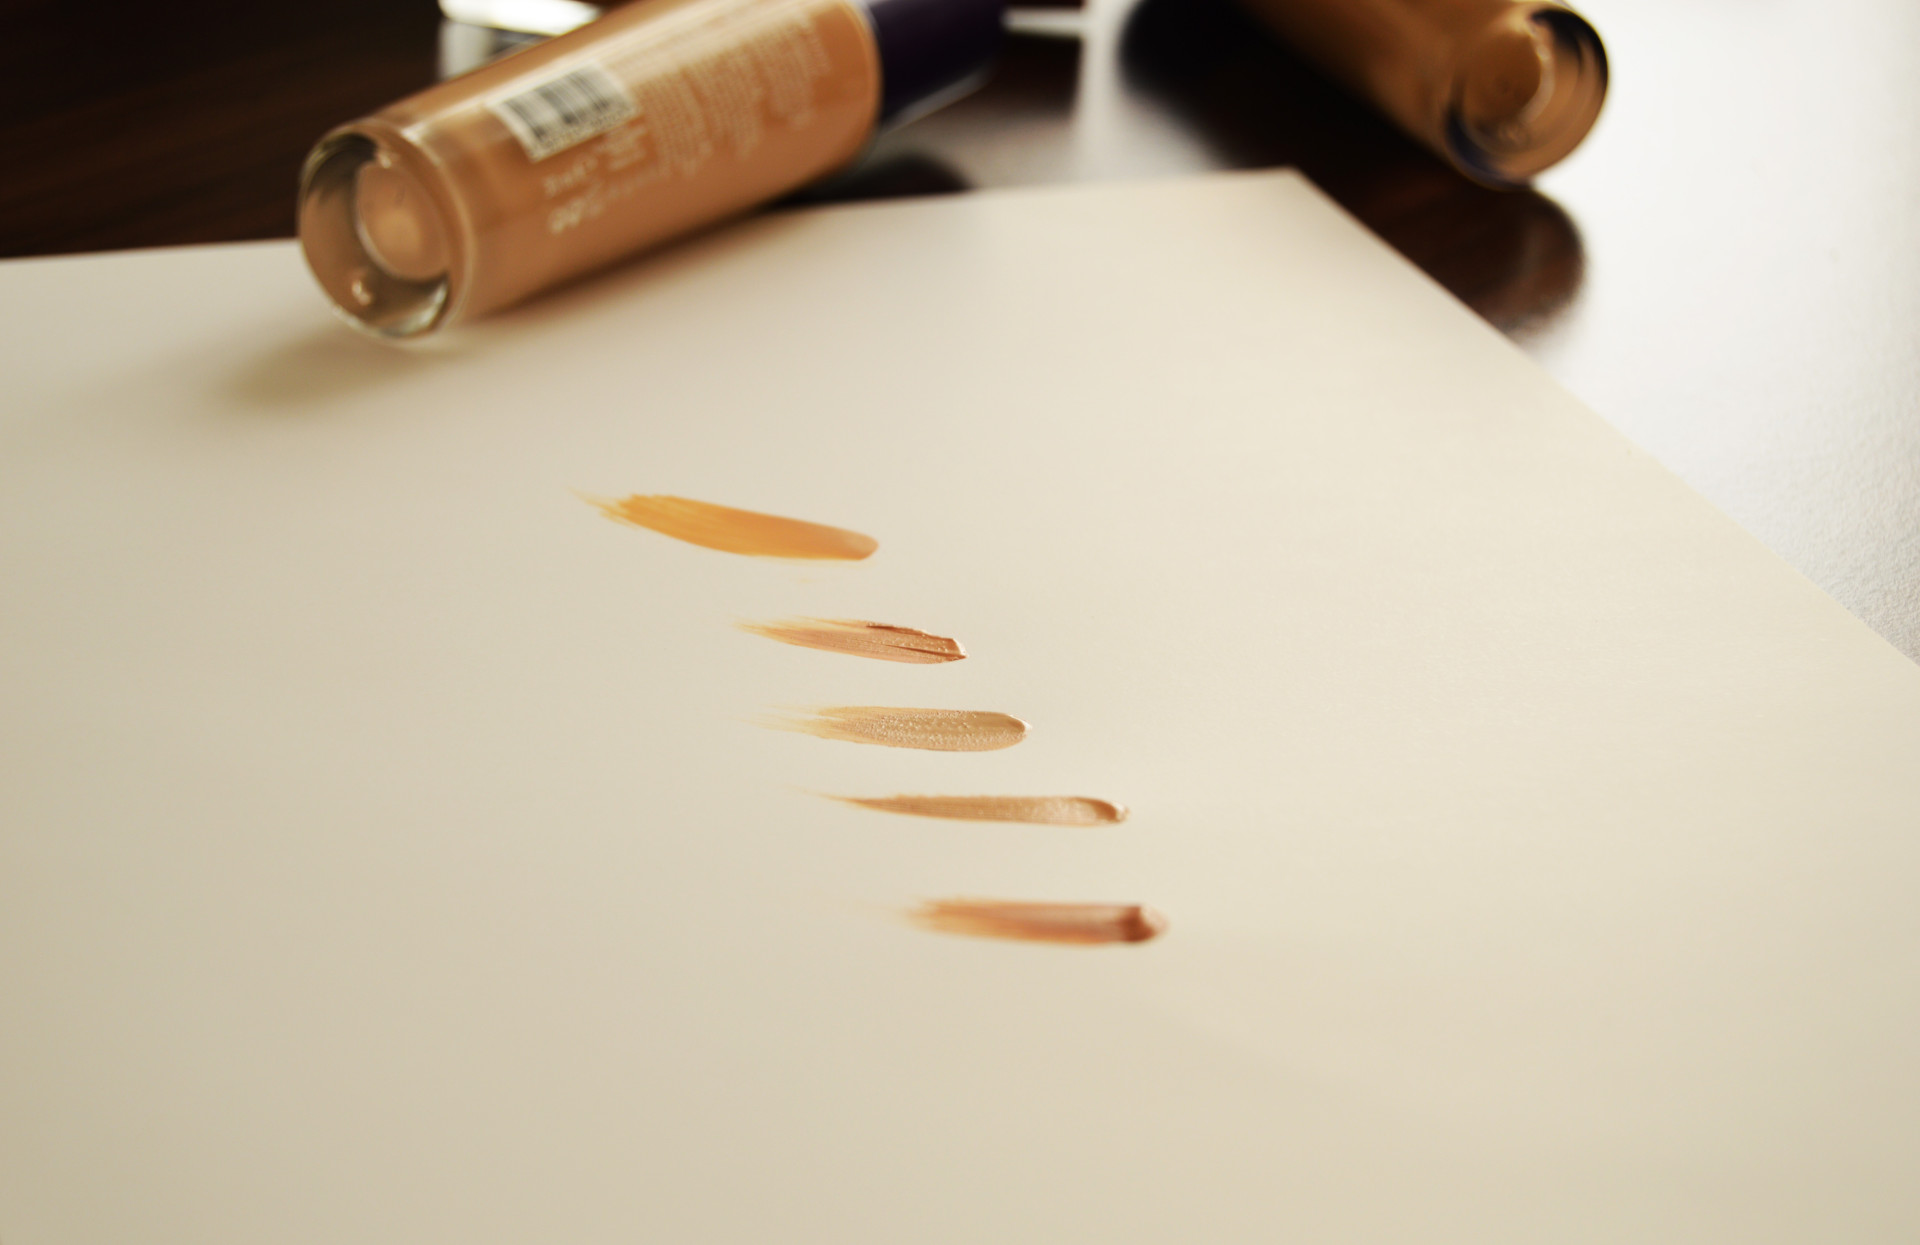 How to choose perfect foundation | Finding the perfect foundation is not all about having the right shade but also about the formula of the foundation. How do you choose your perfect foundation?